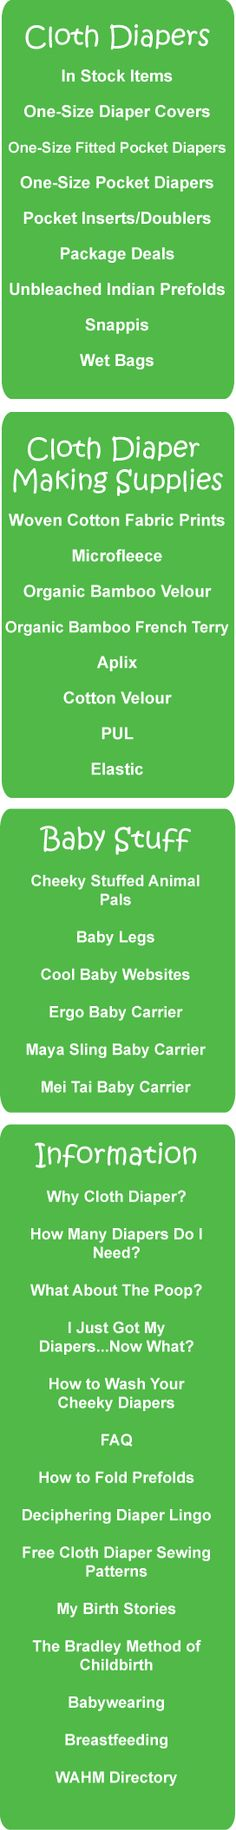 http://www.cheekydiapers.com/Free-Cloth-Diaper-Sewing-Patterns.html